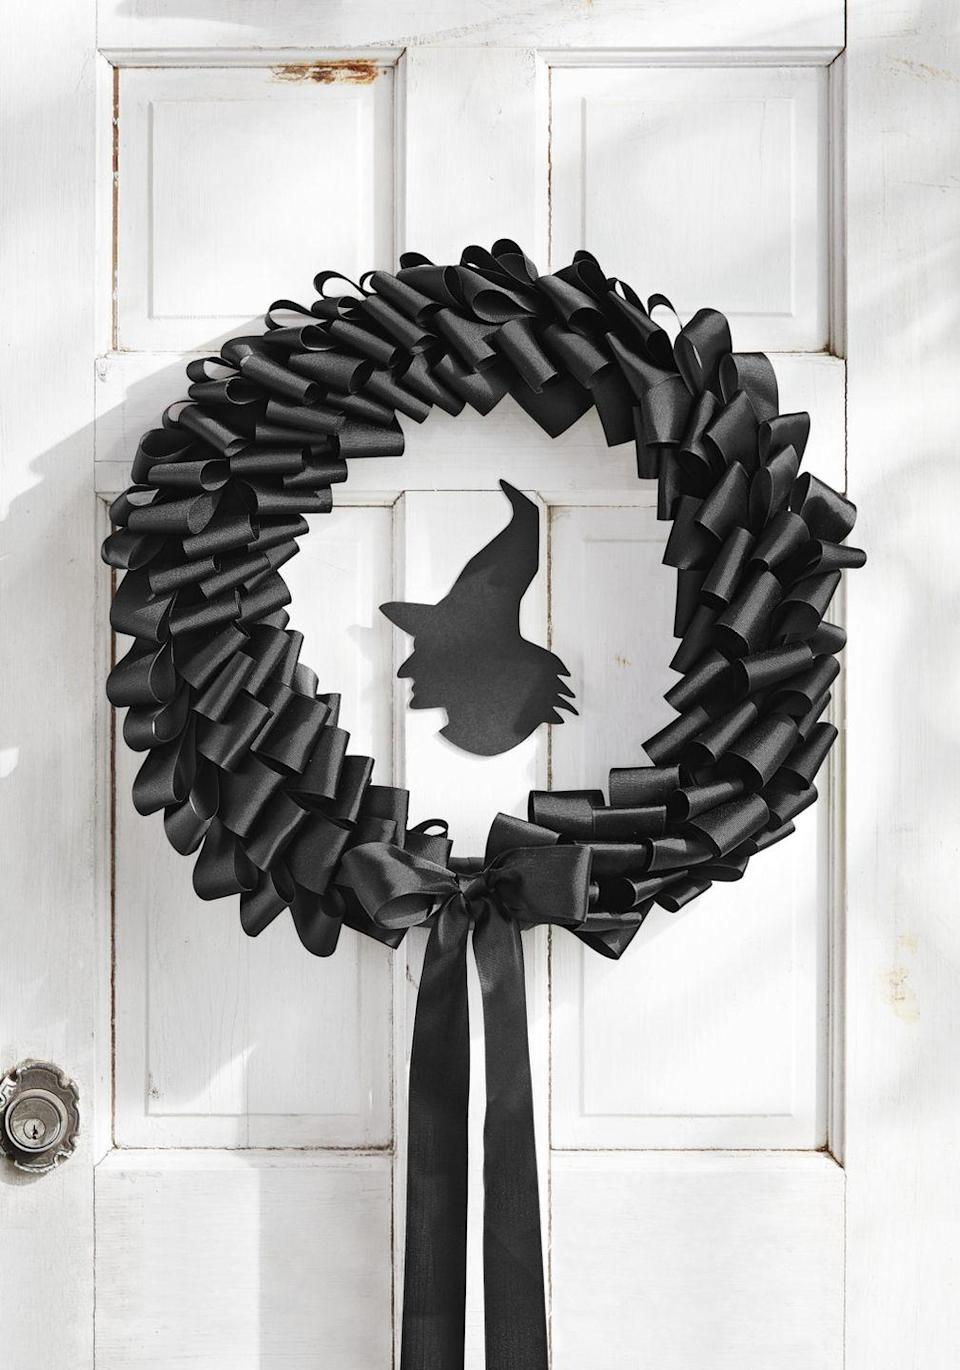 "<p>You'll be bewitched by how easy these wreath is to make. All you need are a few supplies and your spooky creation comes to life (cue maniacal laughter).</p><p><strong>Make the Witch Wreath: </strong>Cut 150 6-inch-long strips of 2-inch-wide black grosgrain ribbon. Fold the strips in half and attach them to a 16-inch foam wreath form with straight pins, layering them on top of each other to create a ruffle effect. Cut out a silhouette of a witch from black kraft paper. Attach it to the center of a 16-inch round clear piece of acrylic with double-sided tape. Hot-glue the edges of the acrylic round to the back of the wreath form. Finish with a bow with long tails.</p><p><a class=""link rapid-noclick-resp"" href=""https://www.amazon.com/VATIN-Grosgrain-Ribbon-Perfect-Making/dp/B079K9YZWX/?tag=syn-yahoo-20&ascsubtag=%5Bartid%7C10050.g.22350299%5Bsrc%7Cyahoo-us"" rel=""nofollow noopener"" target=""_blank"" data-ylk=""slk:SHOP RIBBON"">SHOP RIBBON</a></p>"